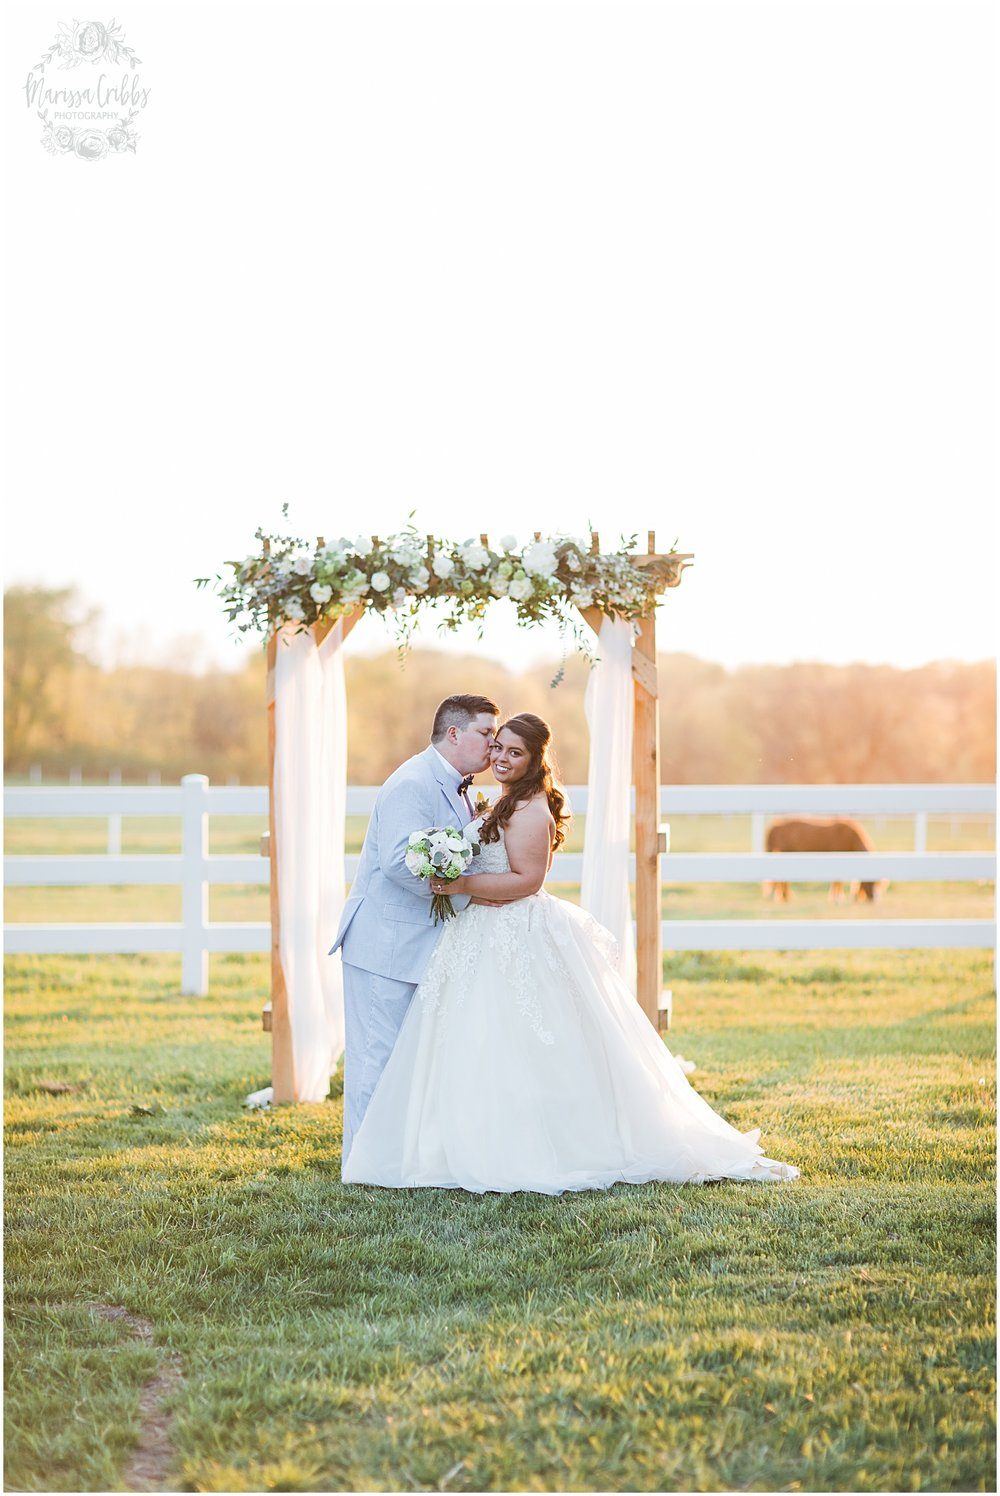 ANDREA & MICHAEL WEDDING | HICKORY CREEK RANCH | MARISSA CRIBBS PHOTOGRAPHY_4910.jpg